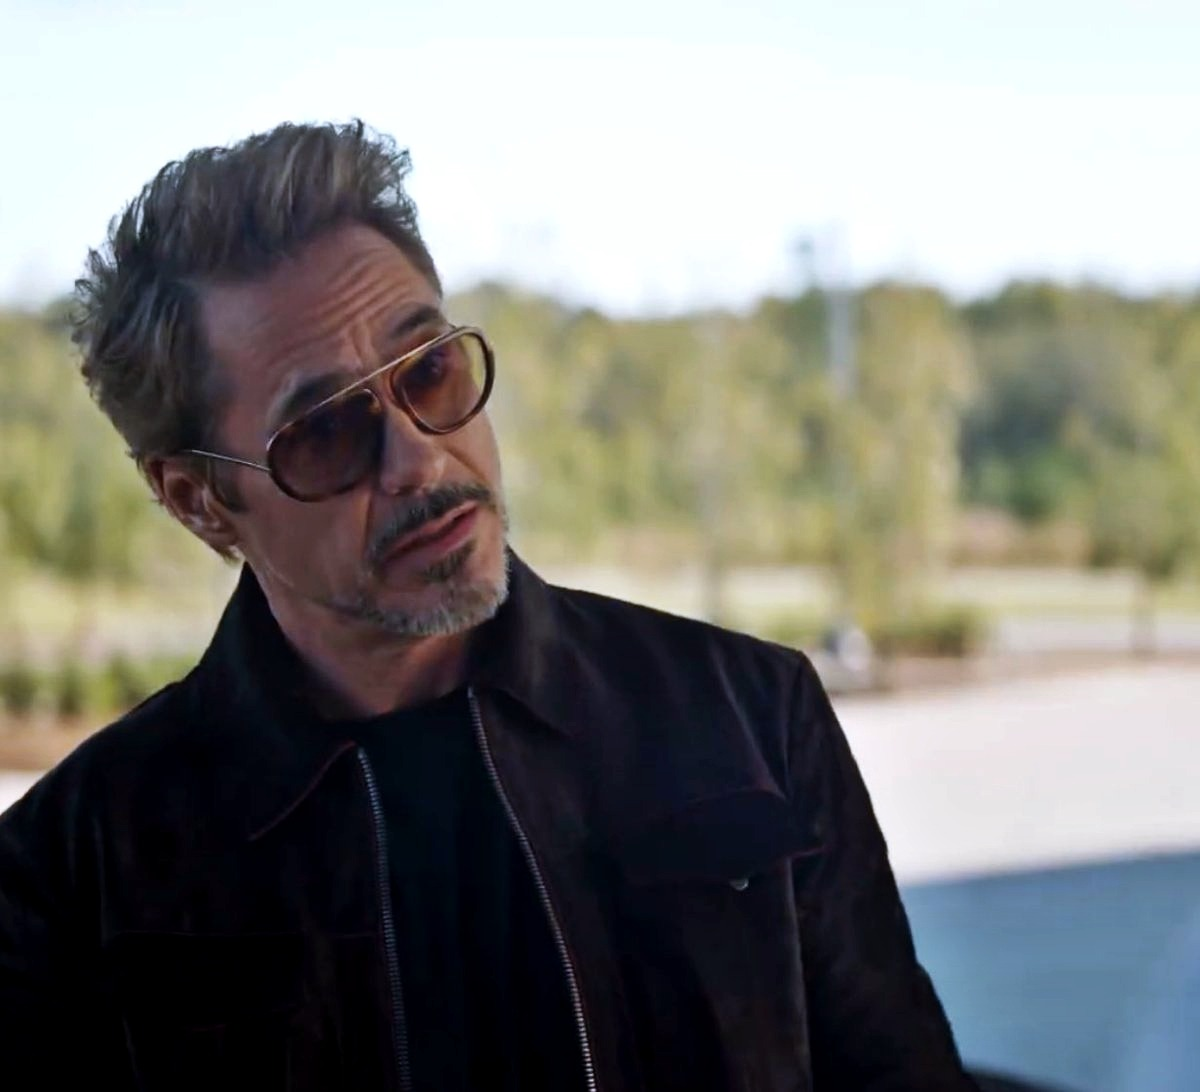 Robert Downey, Jr., notorious middle-aged silver fox